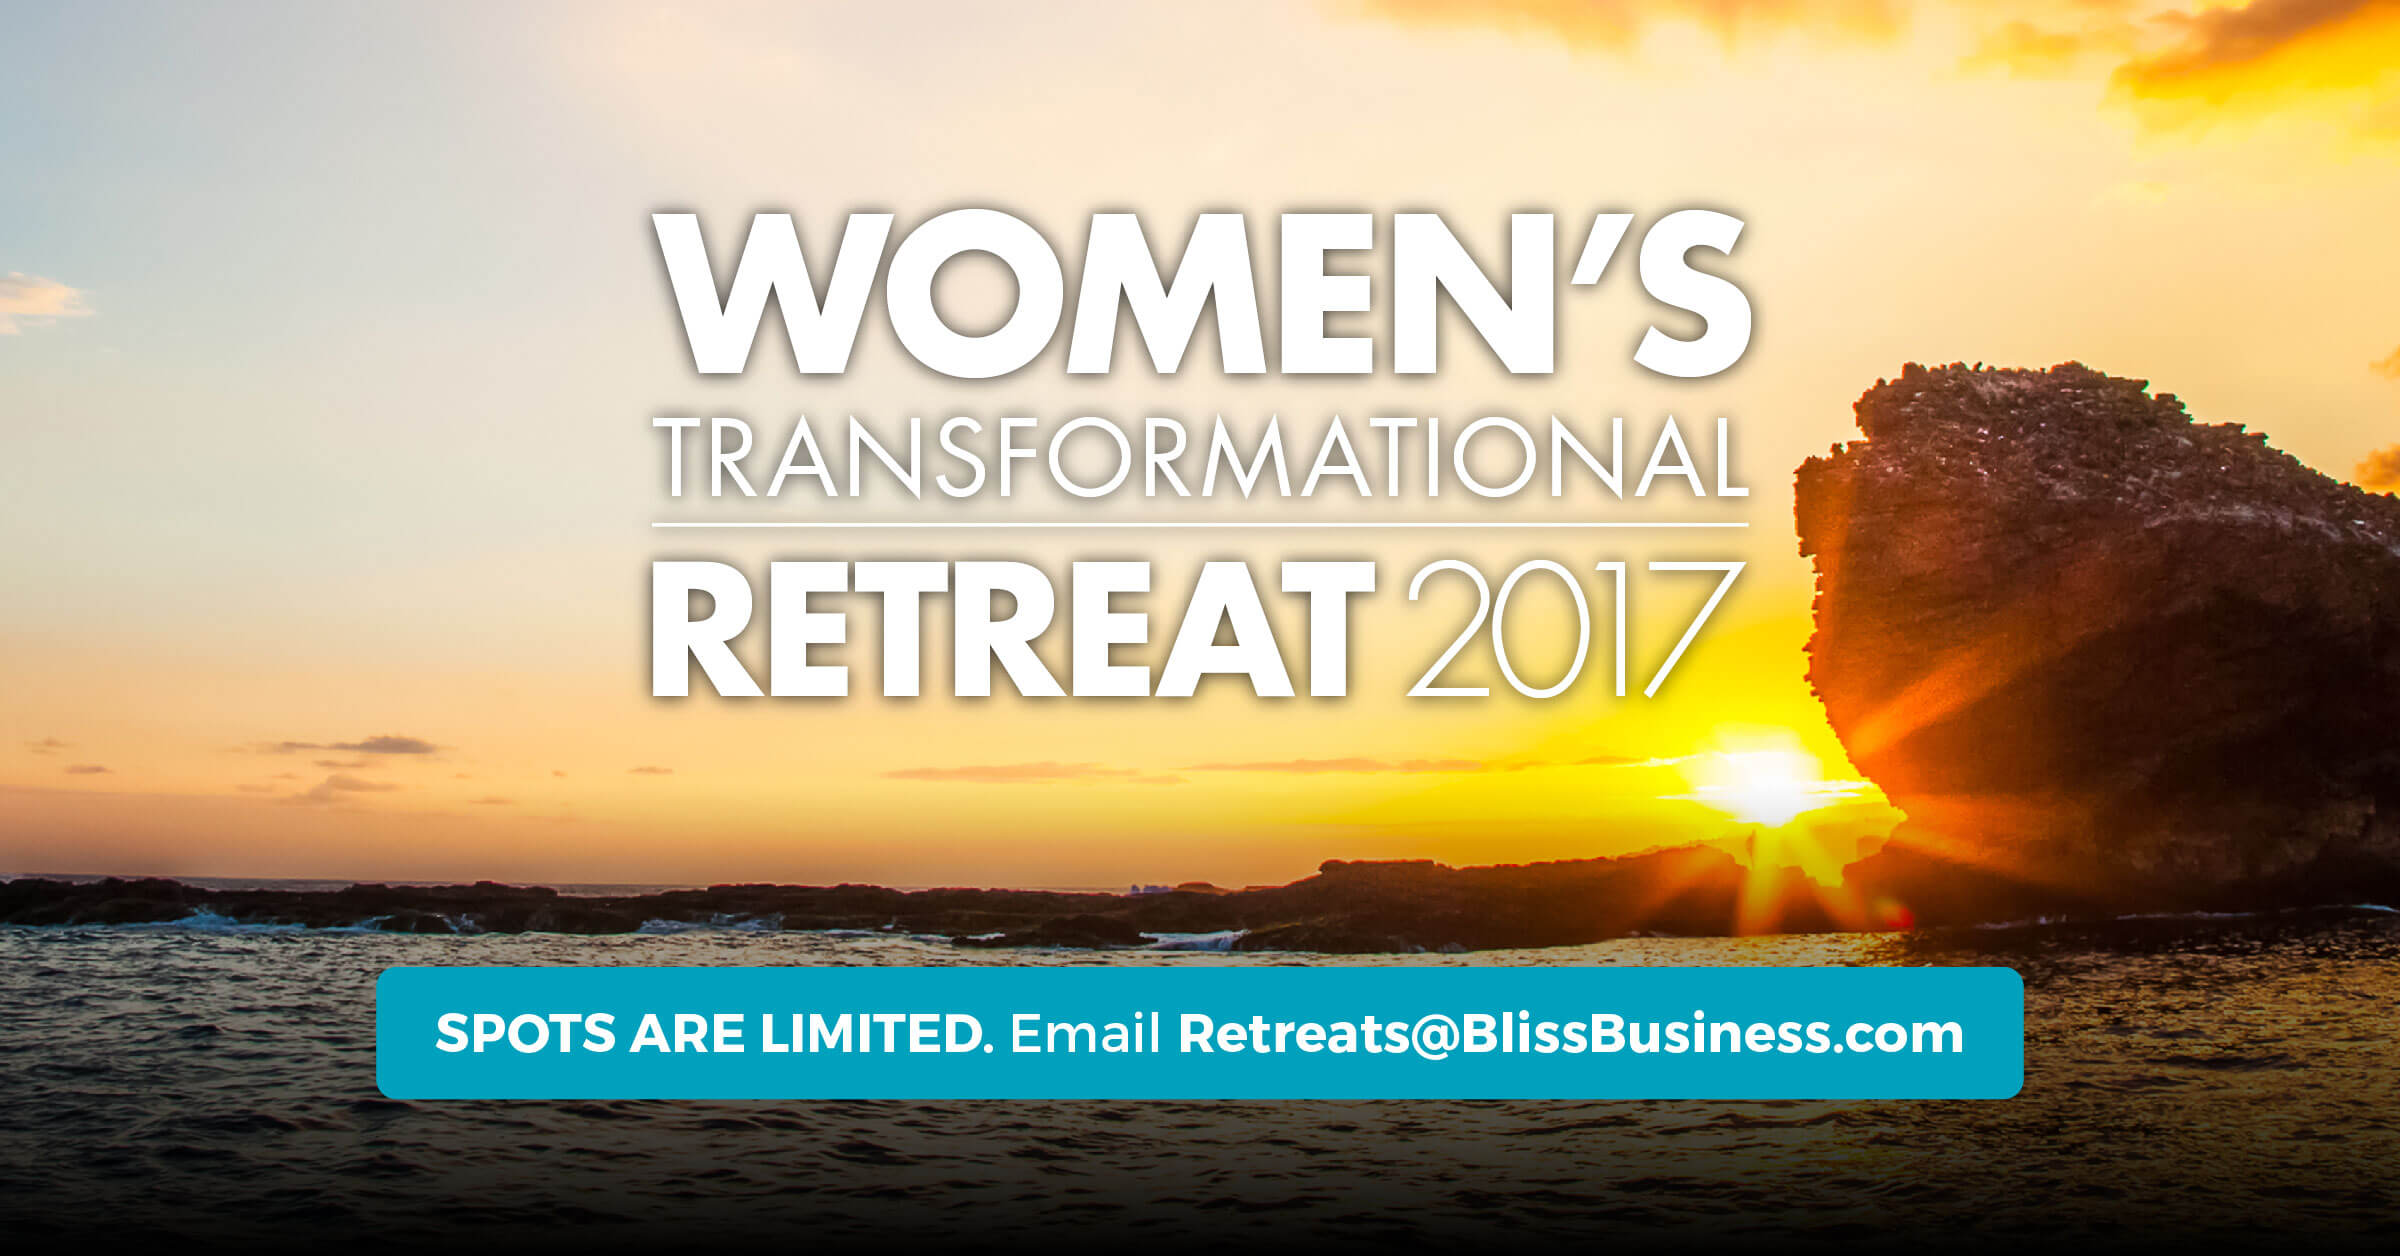 WOMEN'S TRANSFORMATIONAL RETREAT